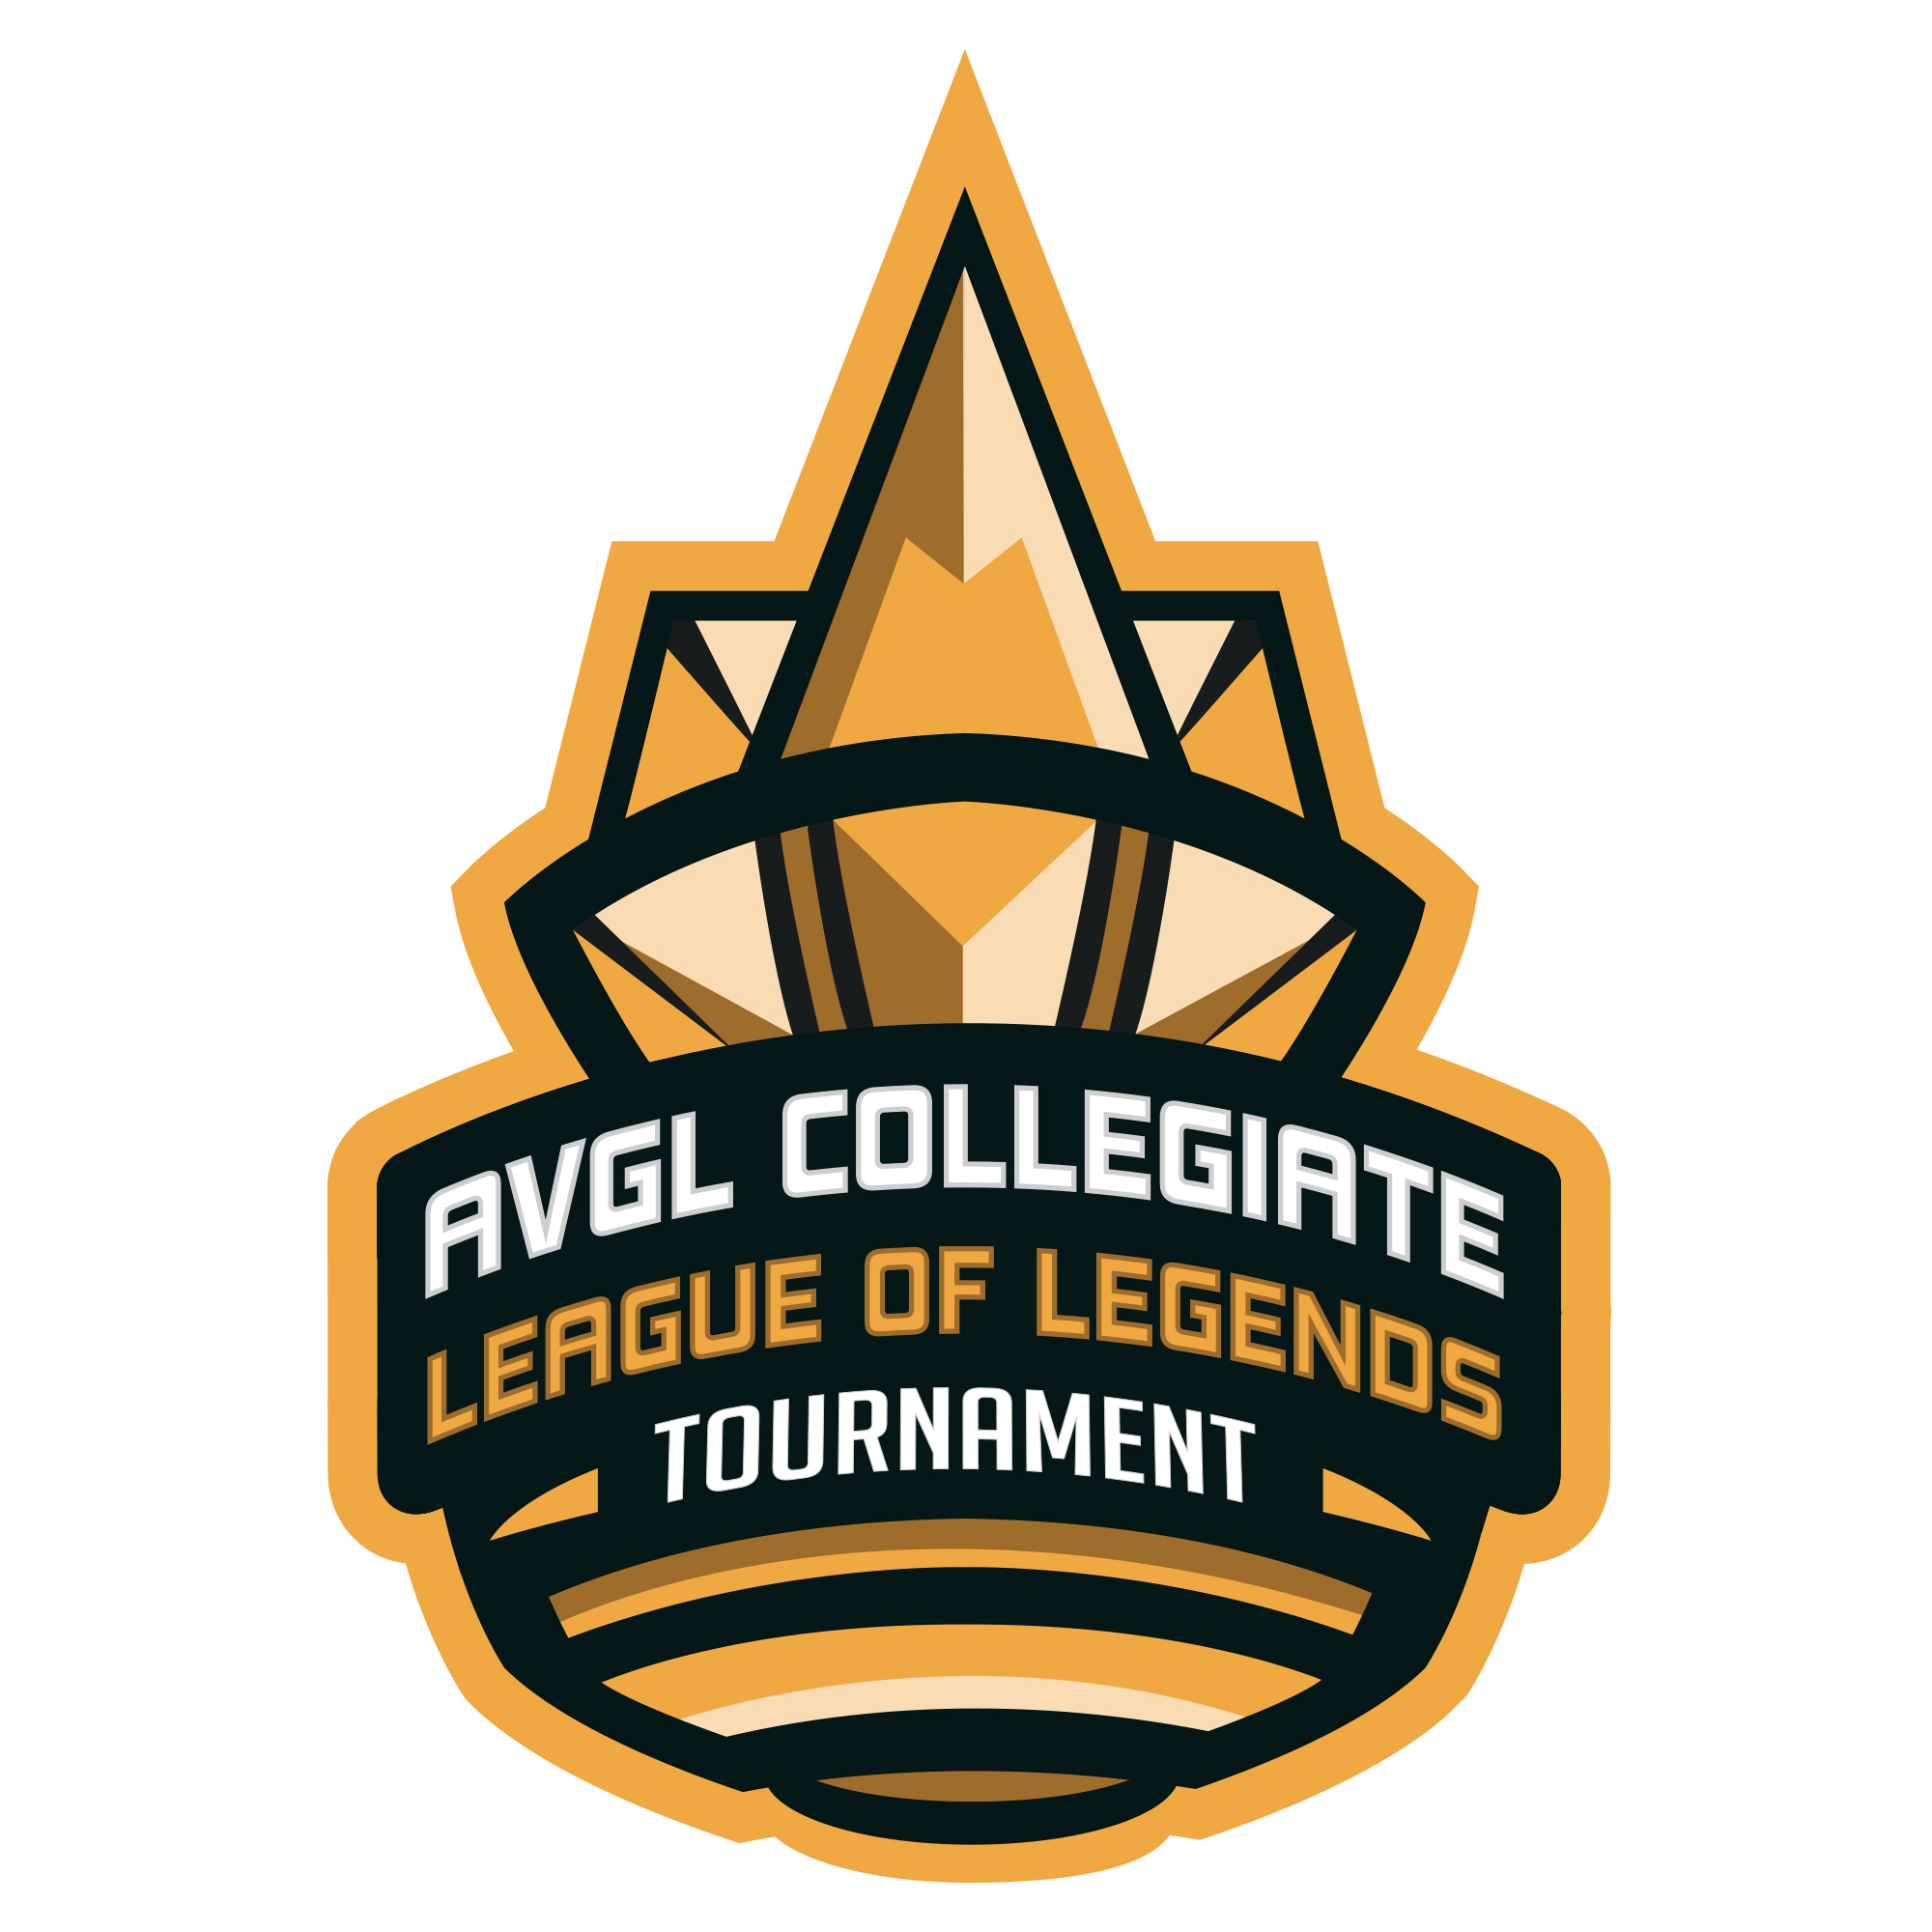 Avgl-league-tournament